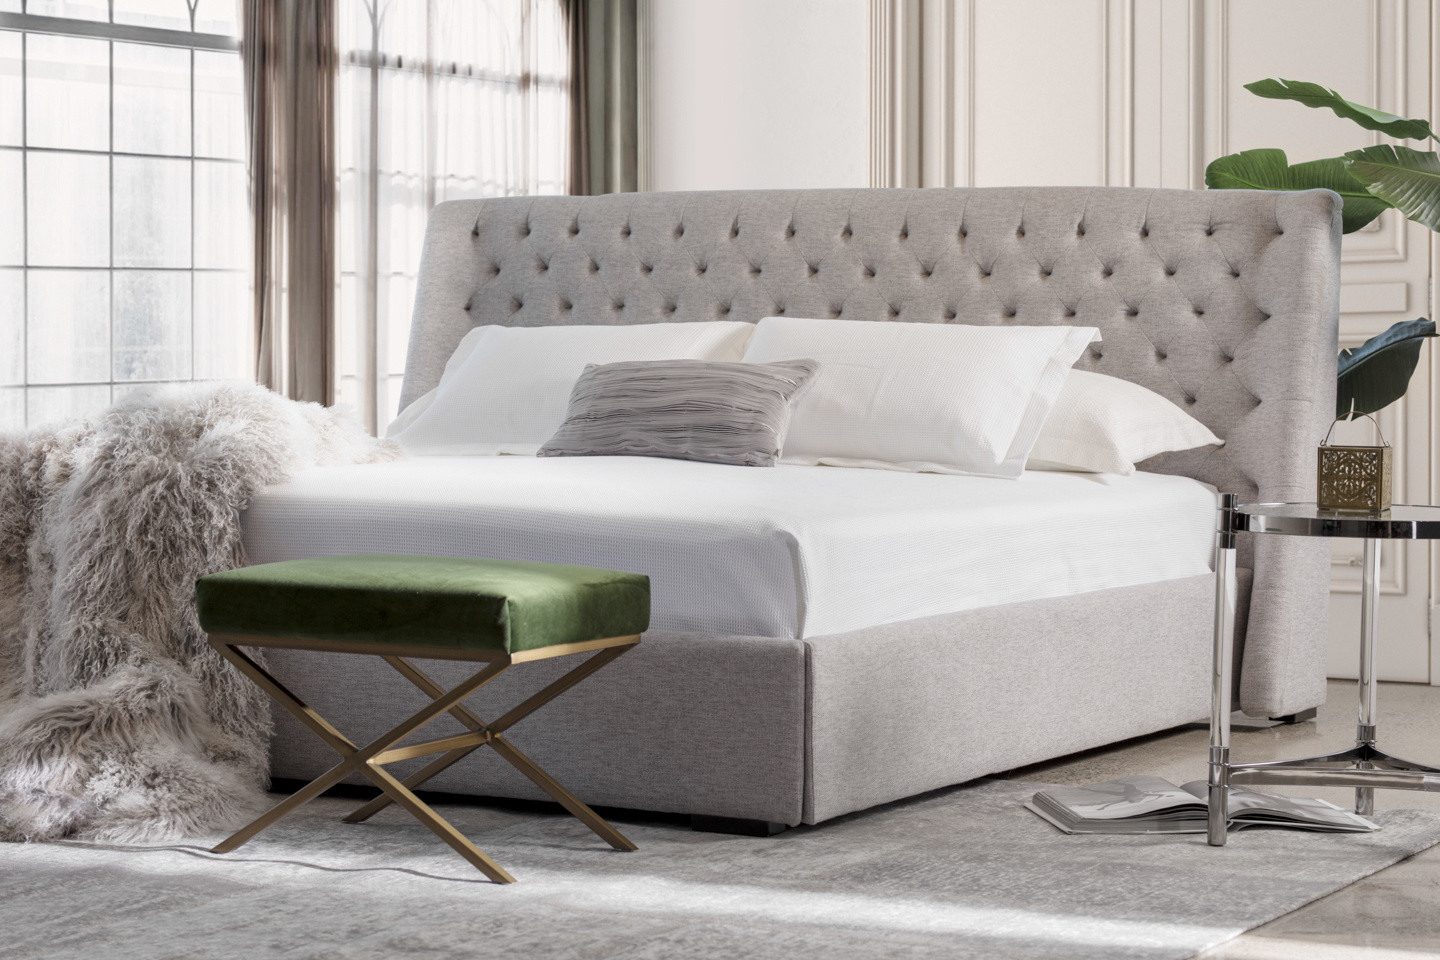 Jacob Upholstered Bed With Tufted Headboard Maison Corbeil